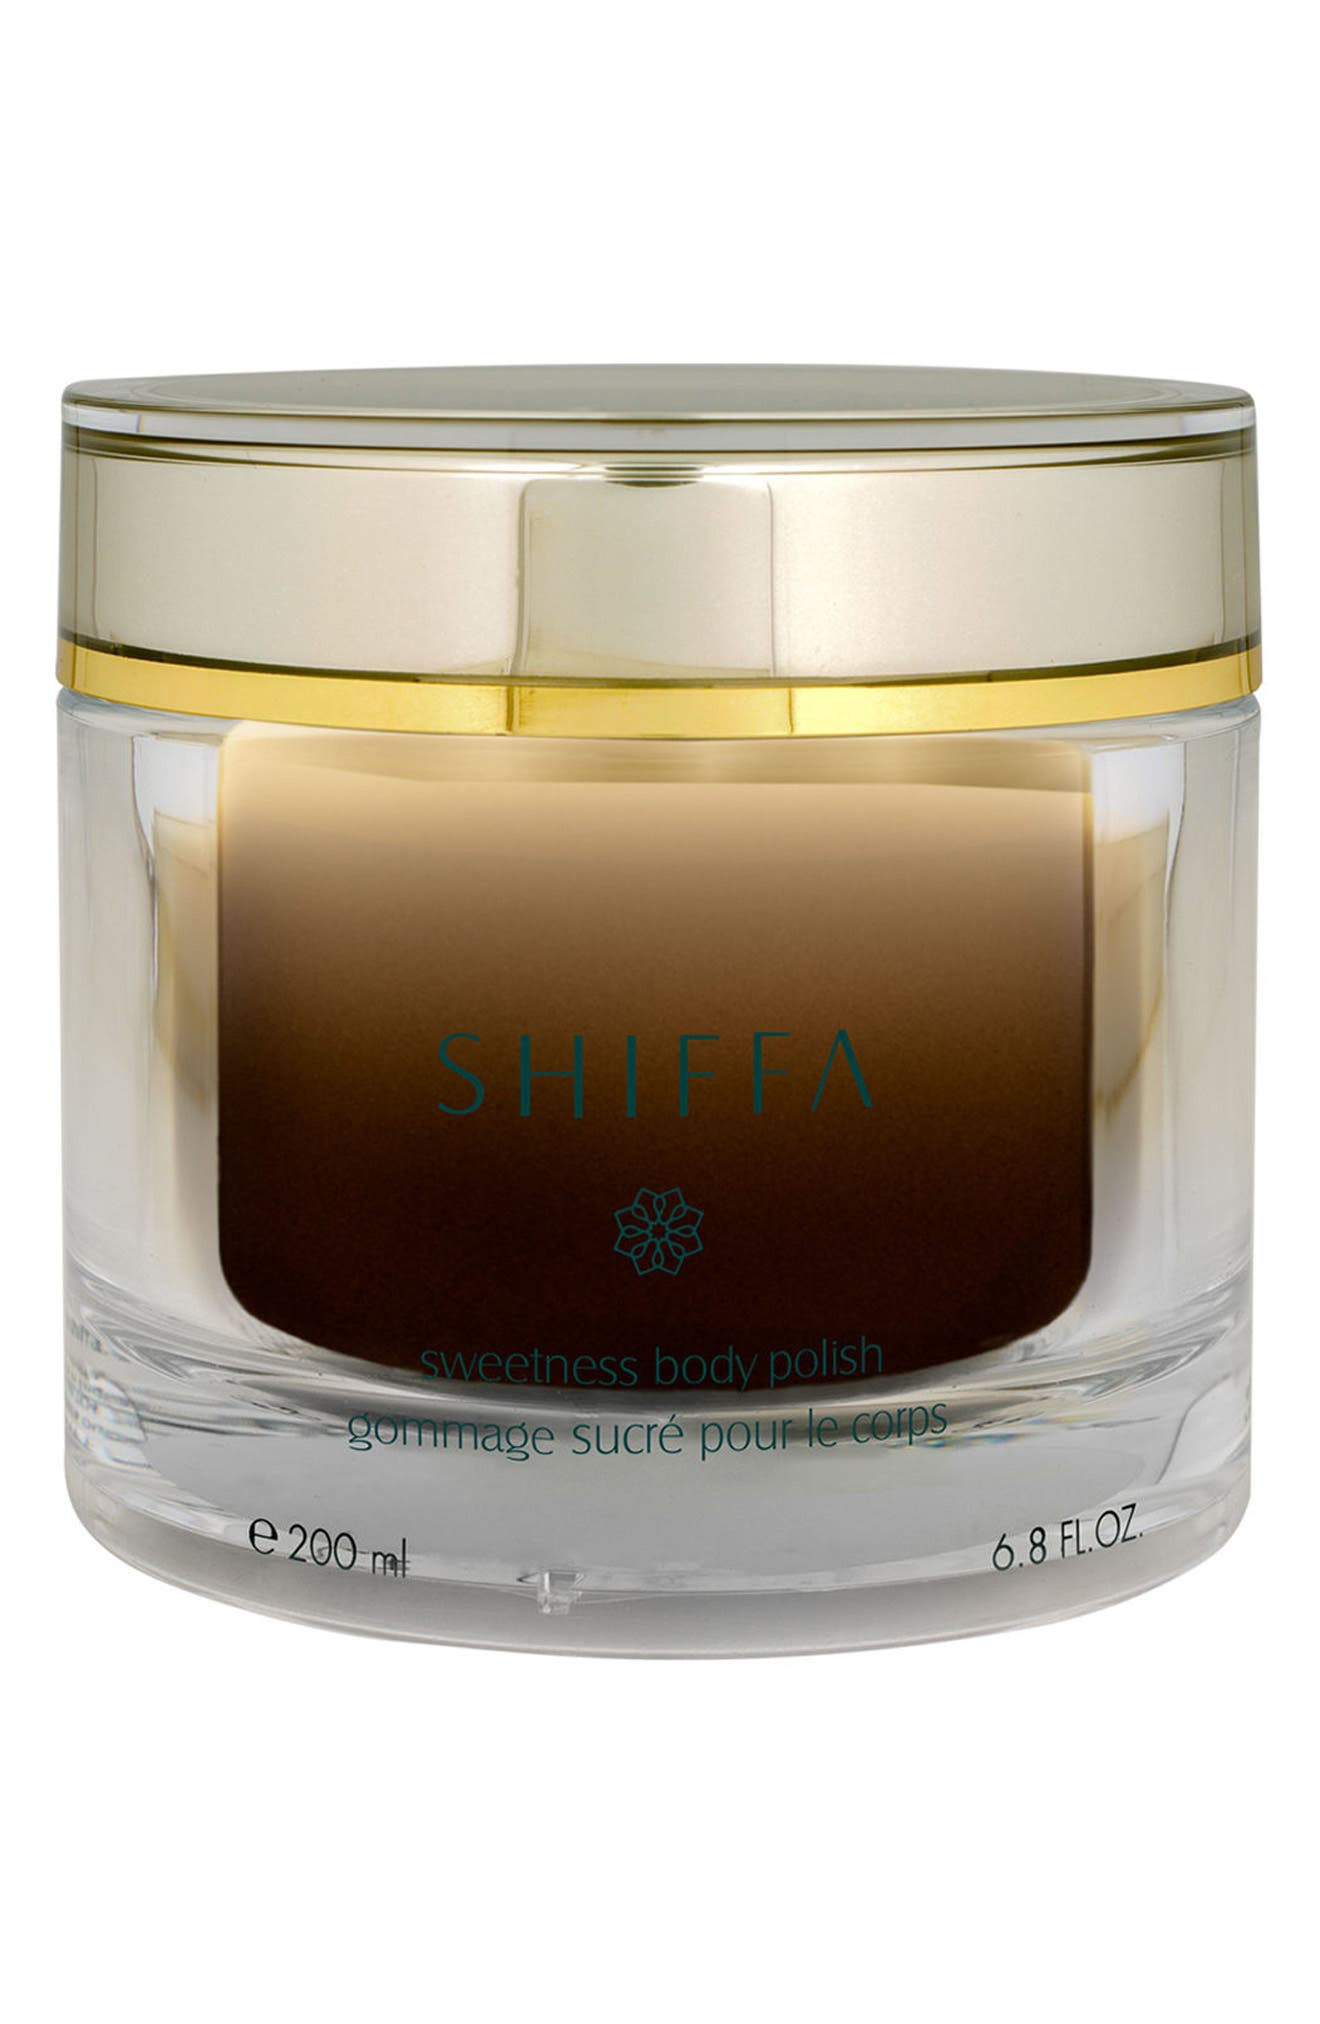 Main Image - Shiffa Sweetness Body Polish